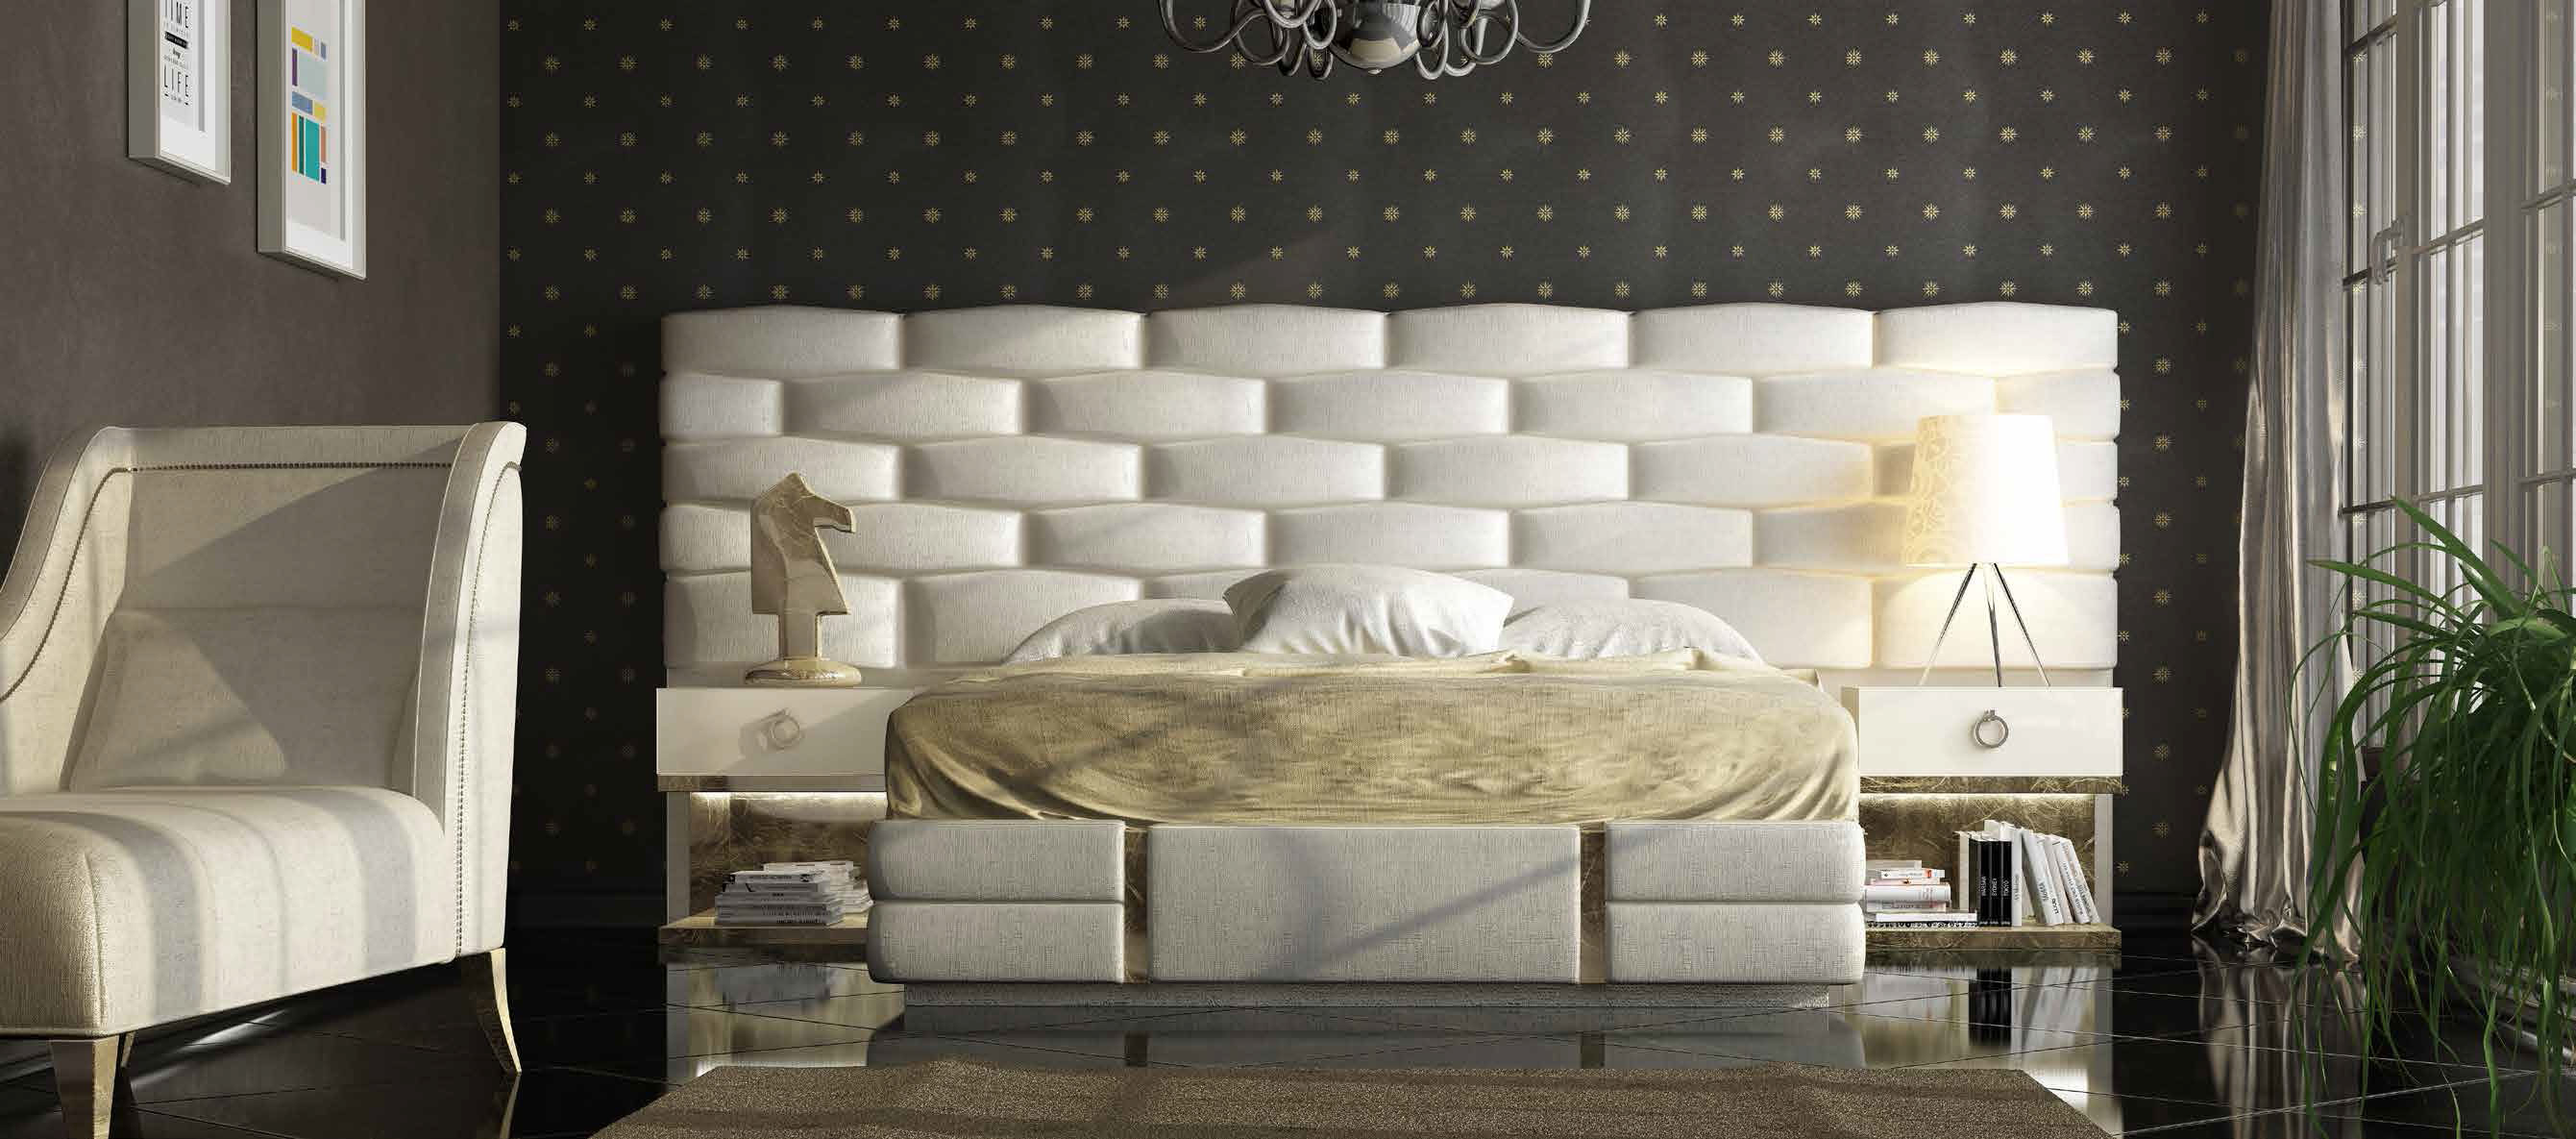 Brands Franco Furniture Bedrooms vol1, Spain DOR 37